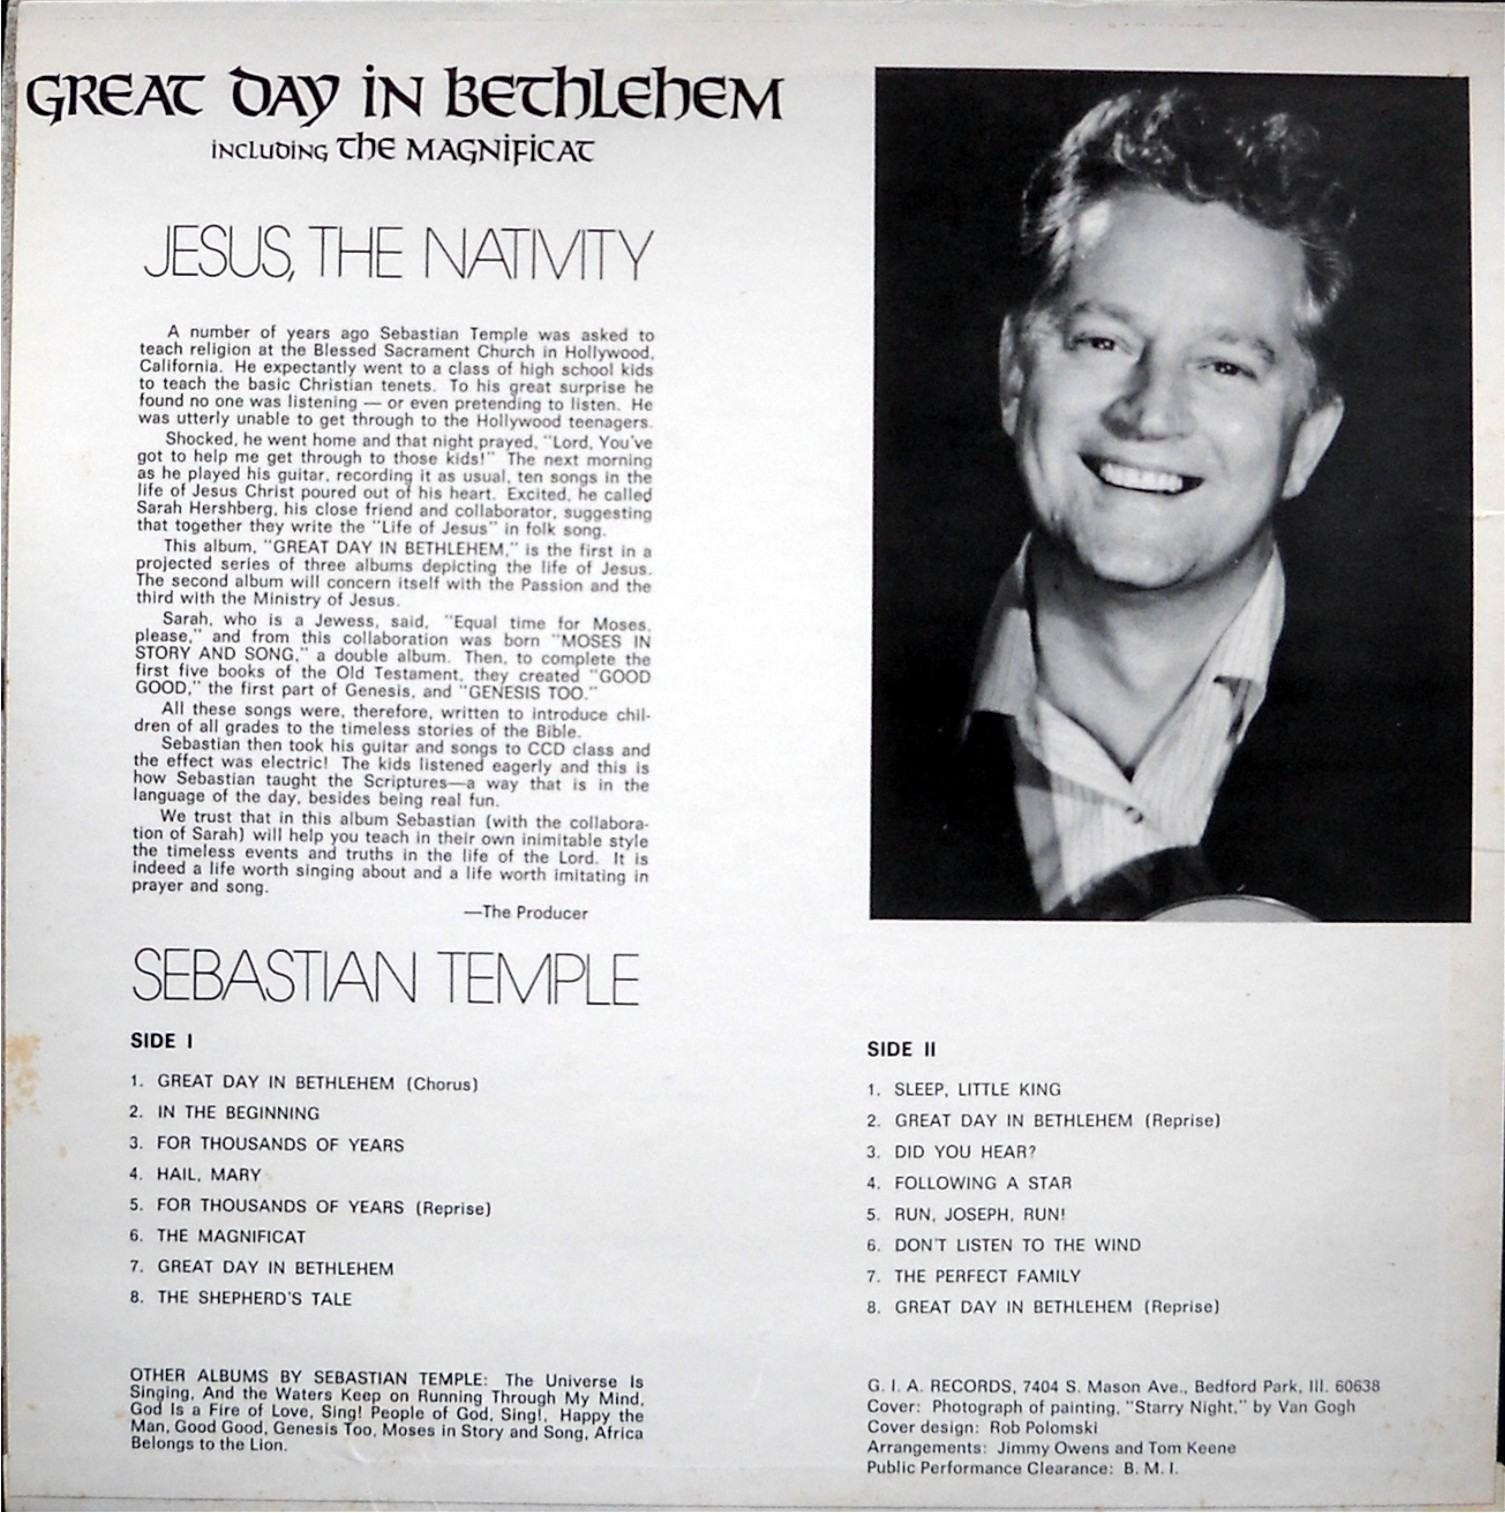 SEBASTIAN TEMPLE - Great Day In Bethlehem | The Ancient Star Song